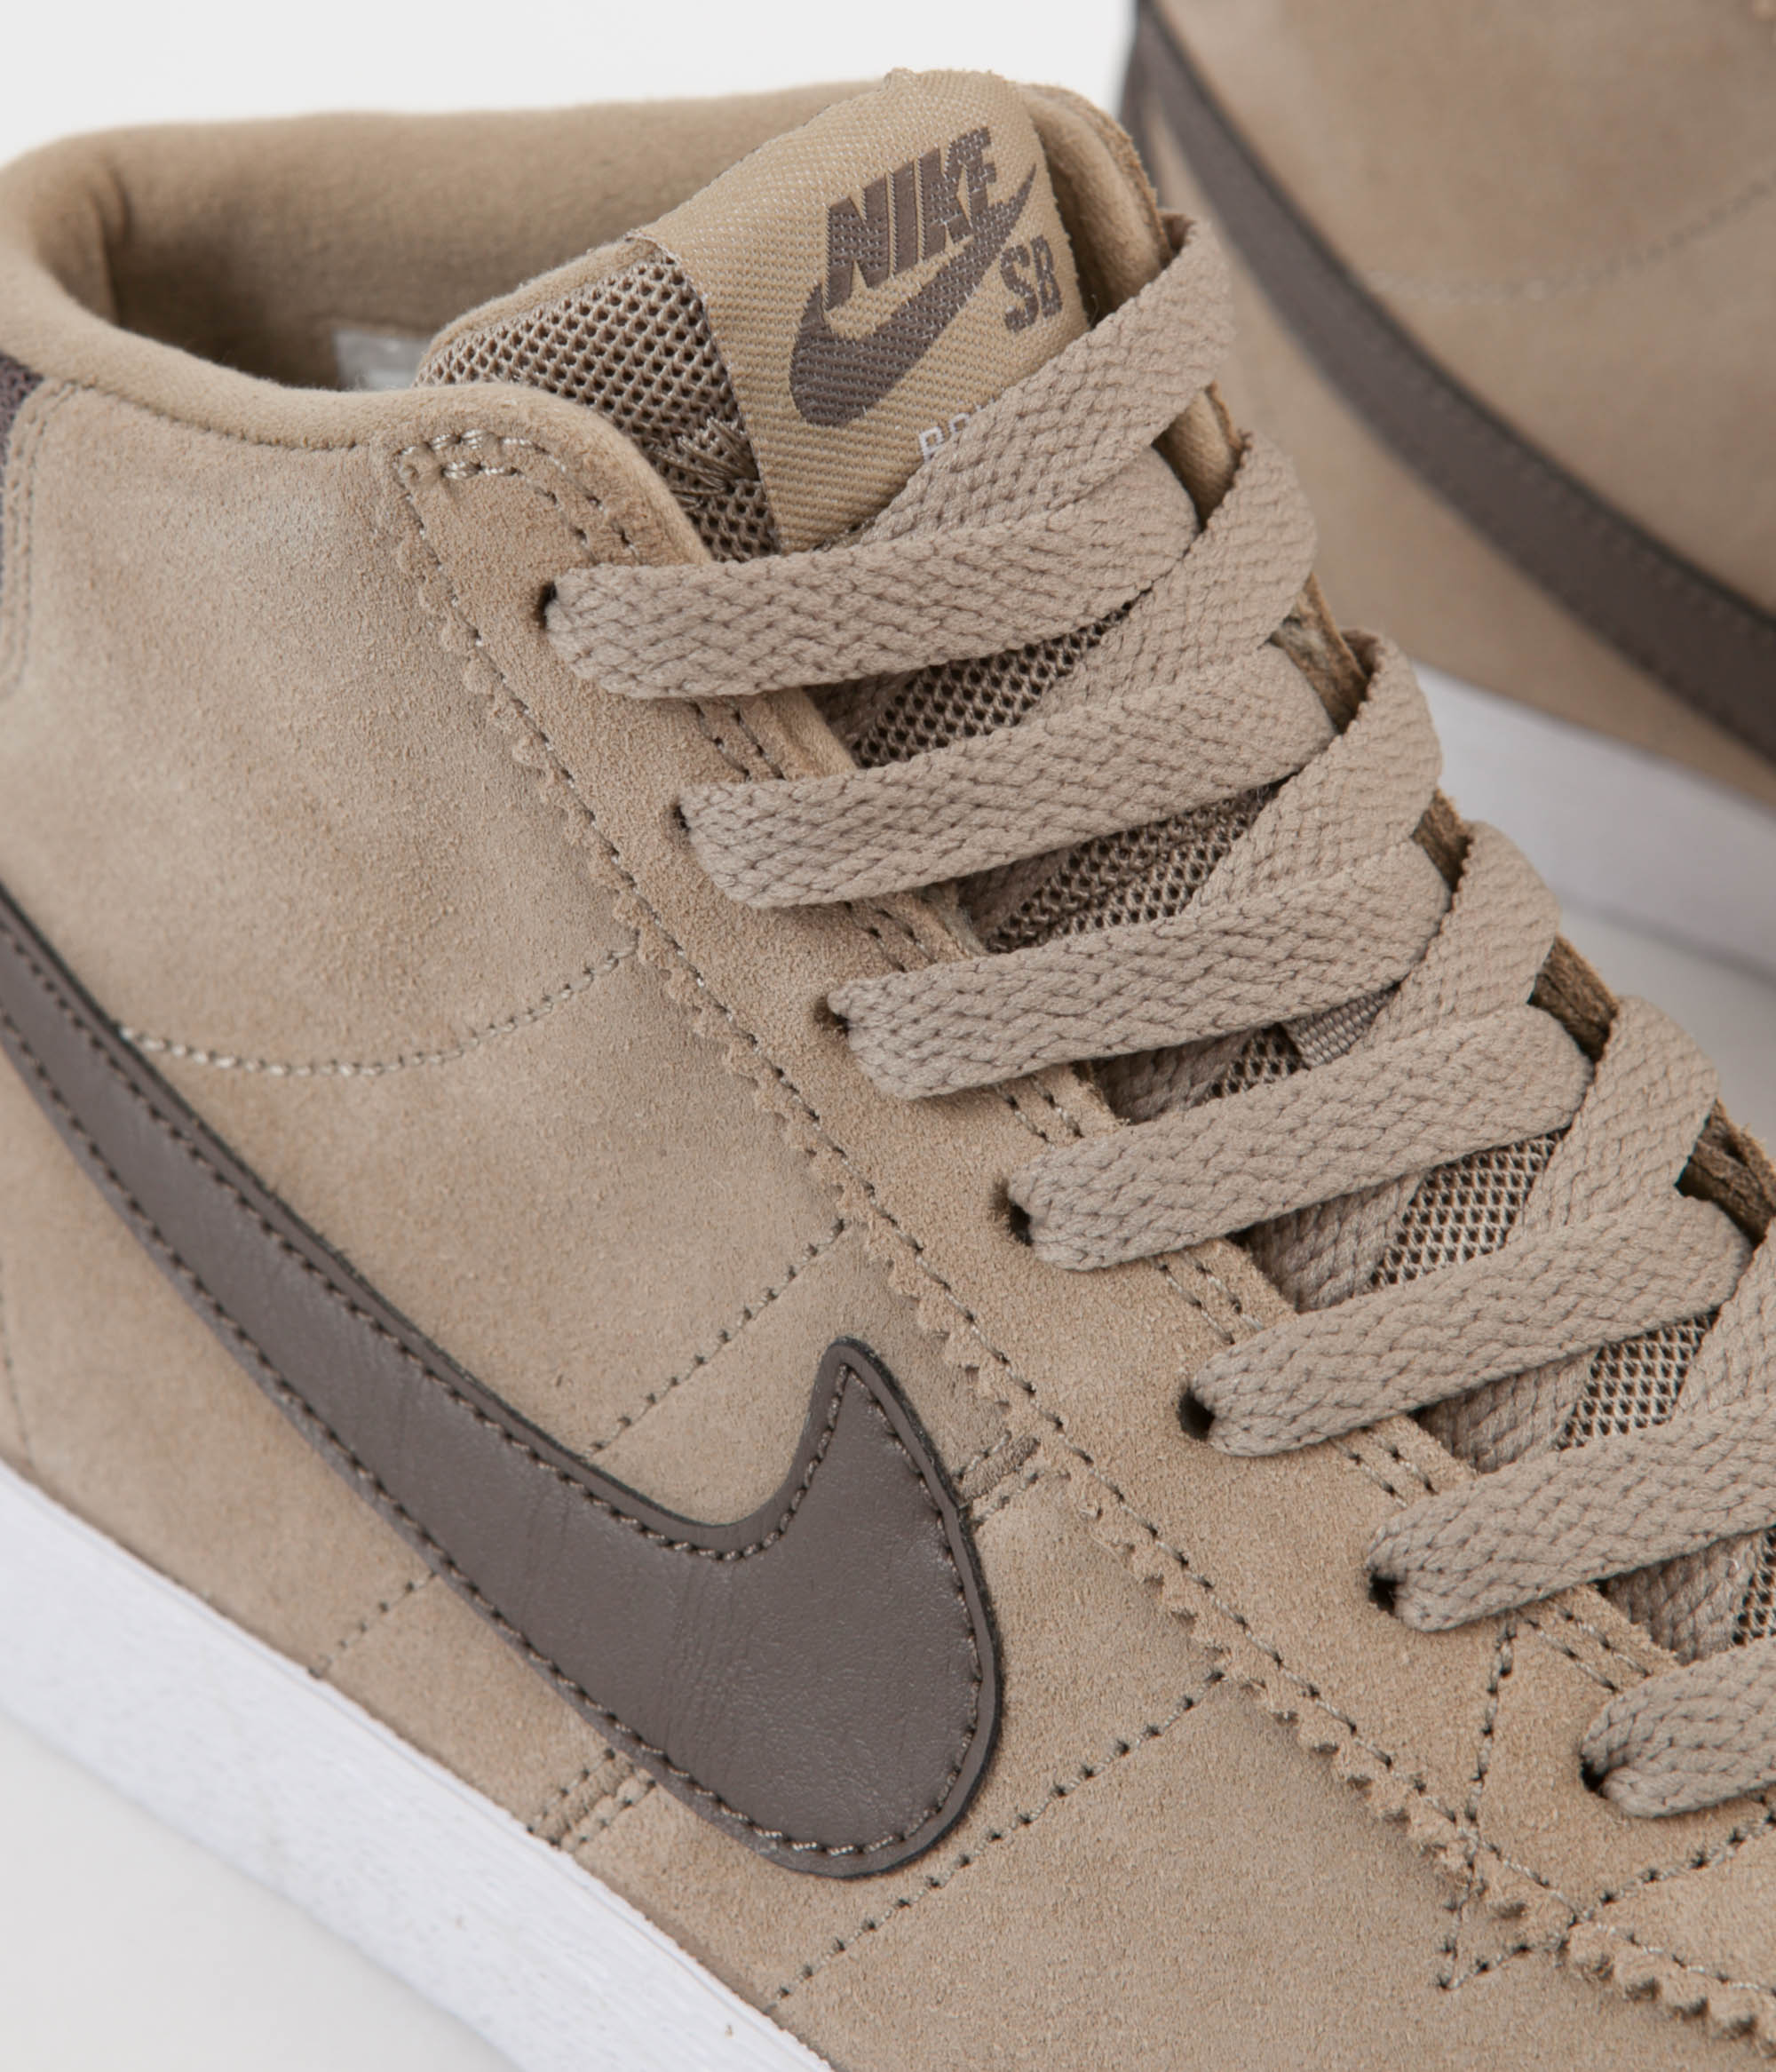 ... Nike SB Women s Bruin Hi Shoes - Khaki   Ridgerock - White ... e3167d8350